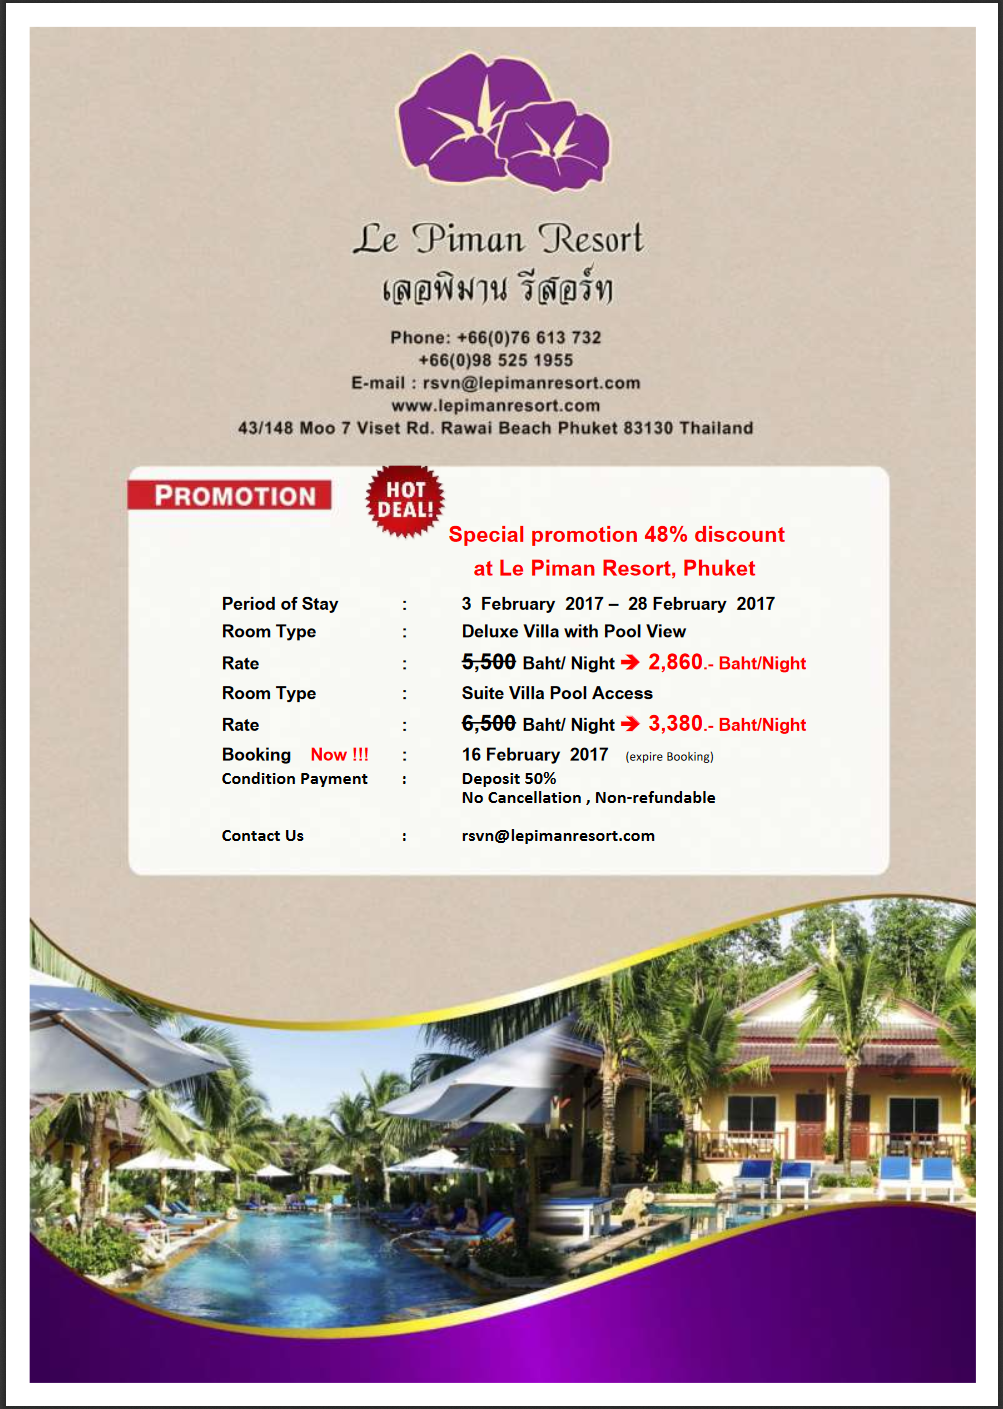 http://lepimanresort.com/wp-content/uploads/2016/12/Hot-Deals.png